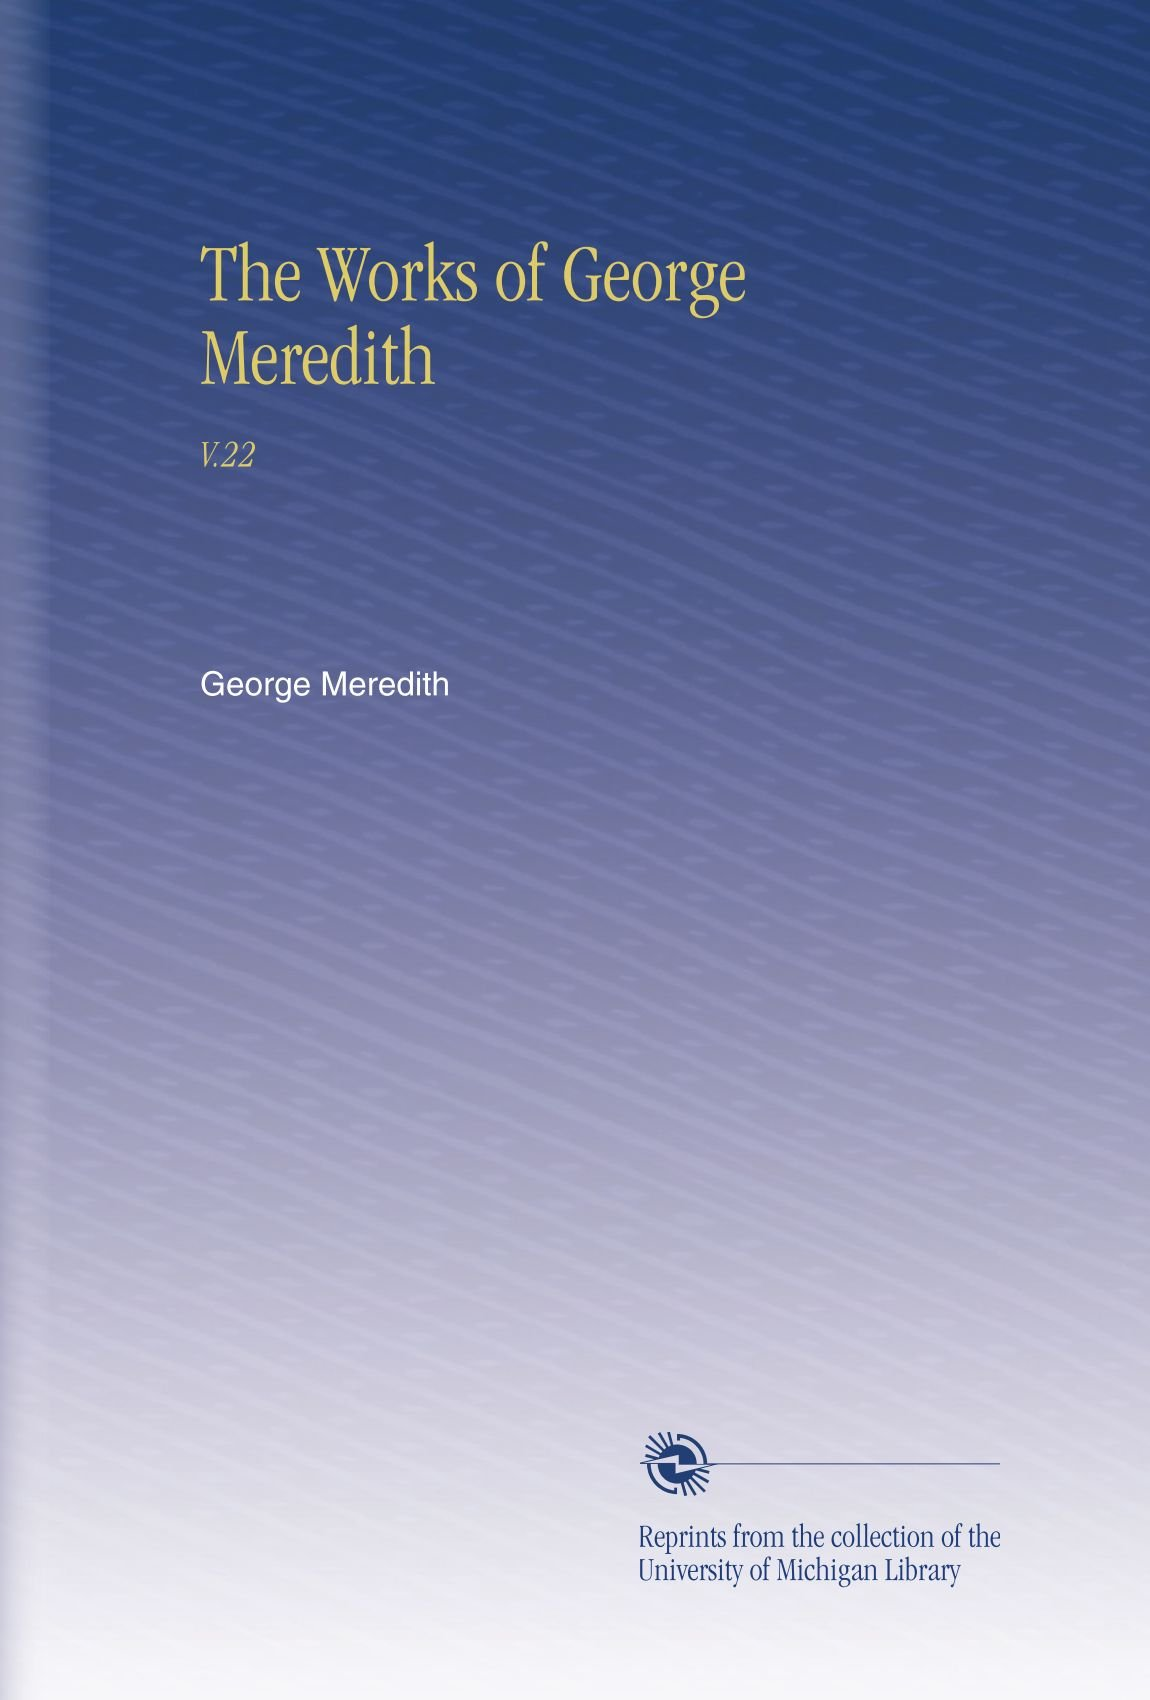 The Works of George Meredith: V.22 ebook